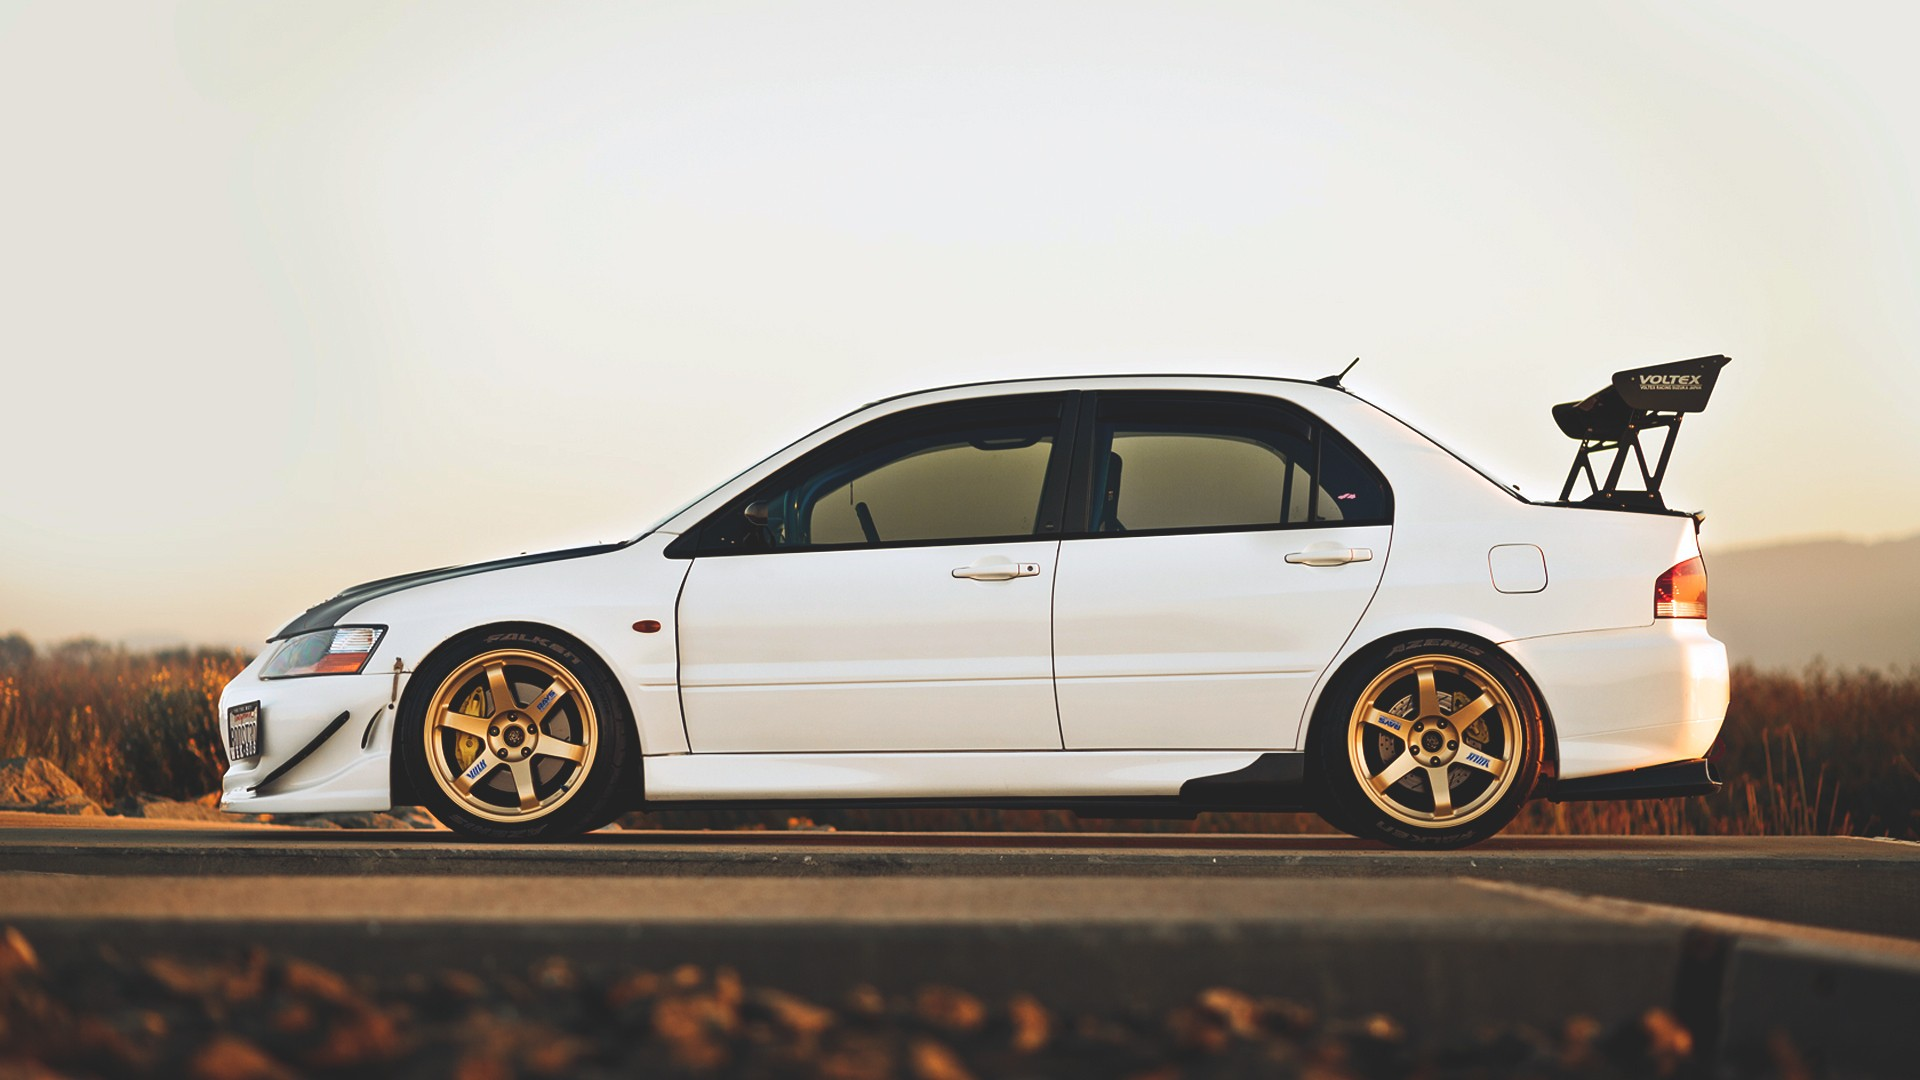 car Evolution Tuning Mitsubishi Lancer EVO White Cars 1920x1080